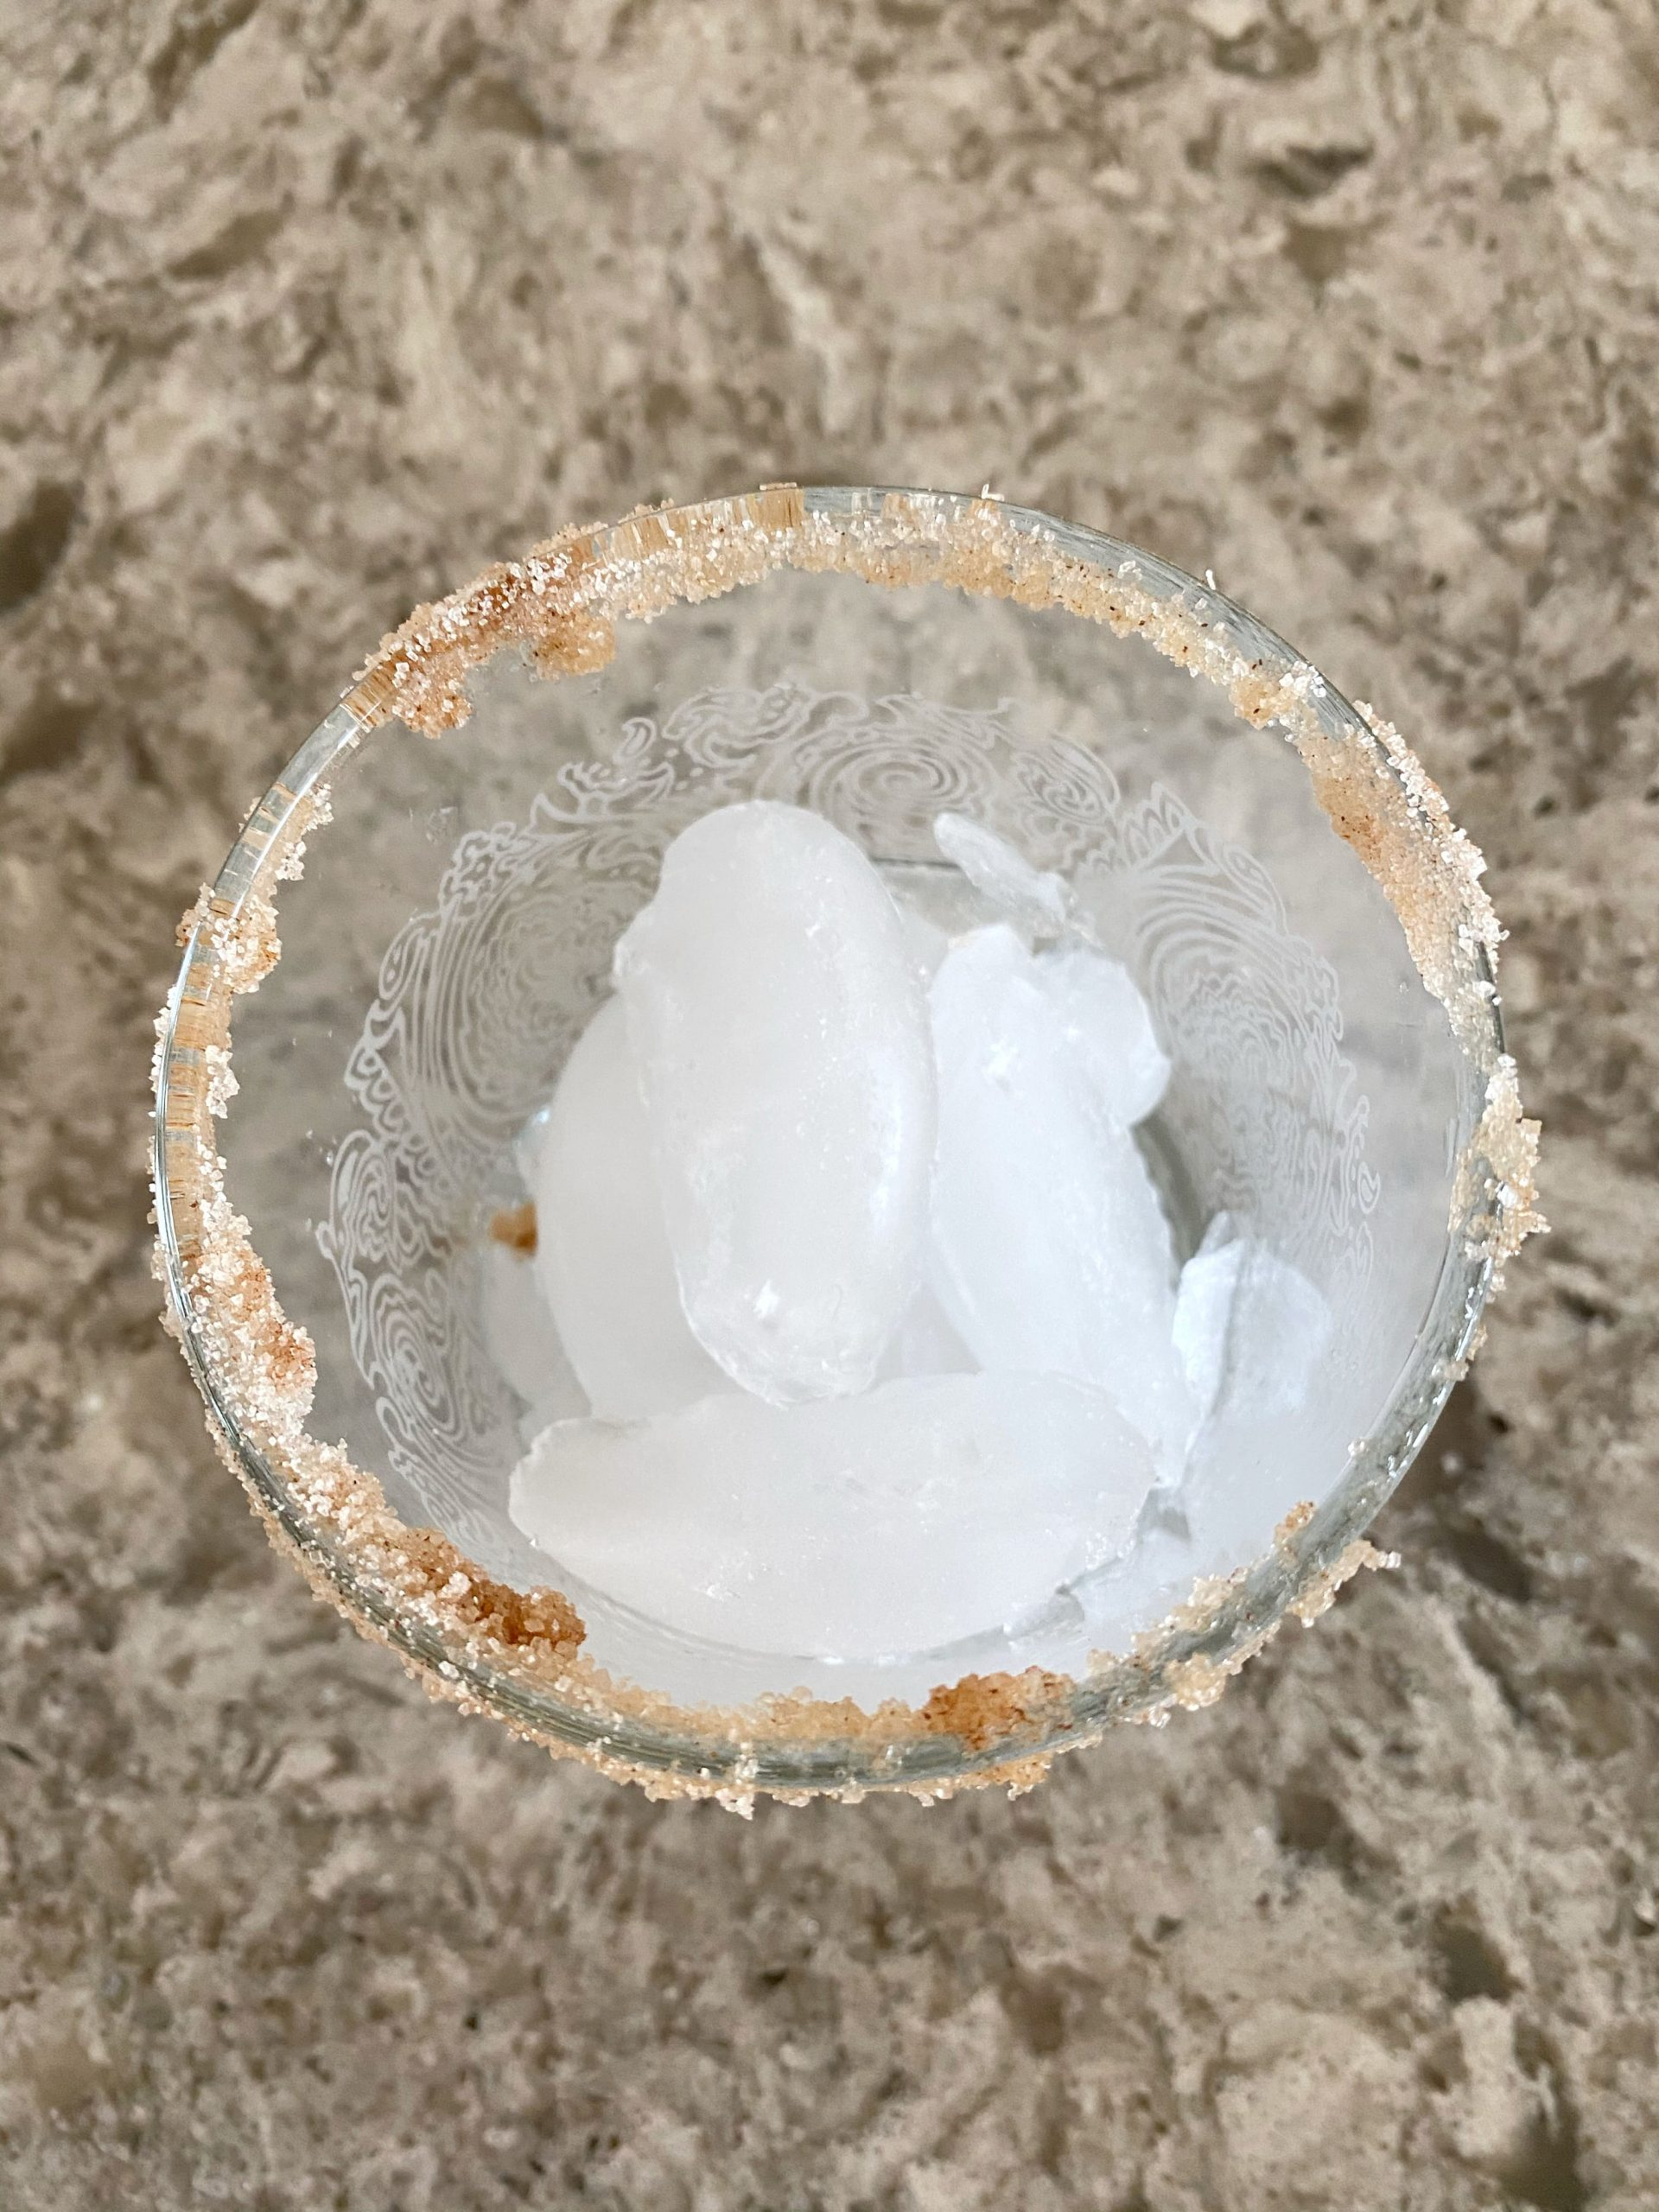 cocktail glass filled with ice